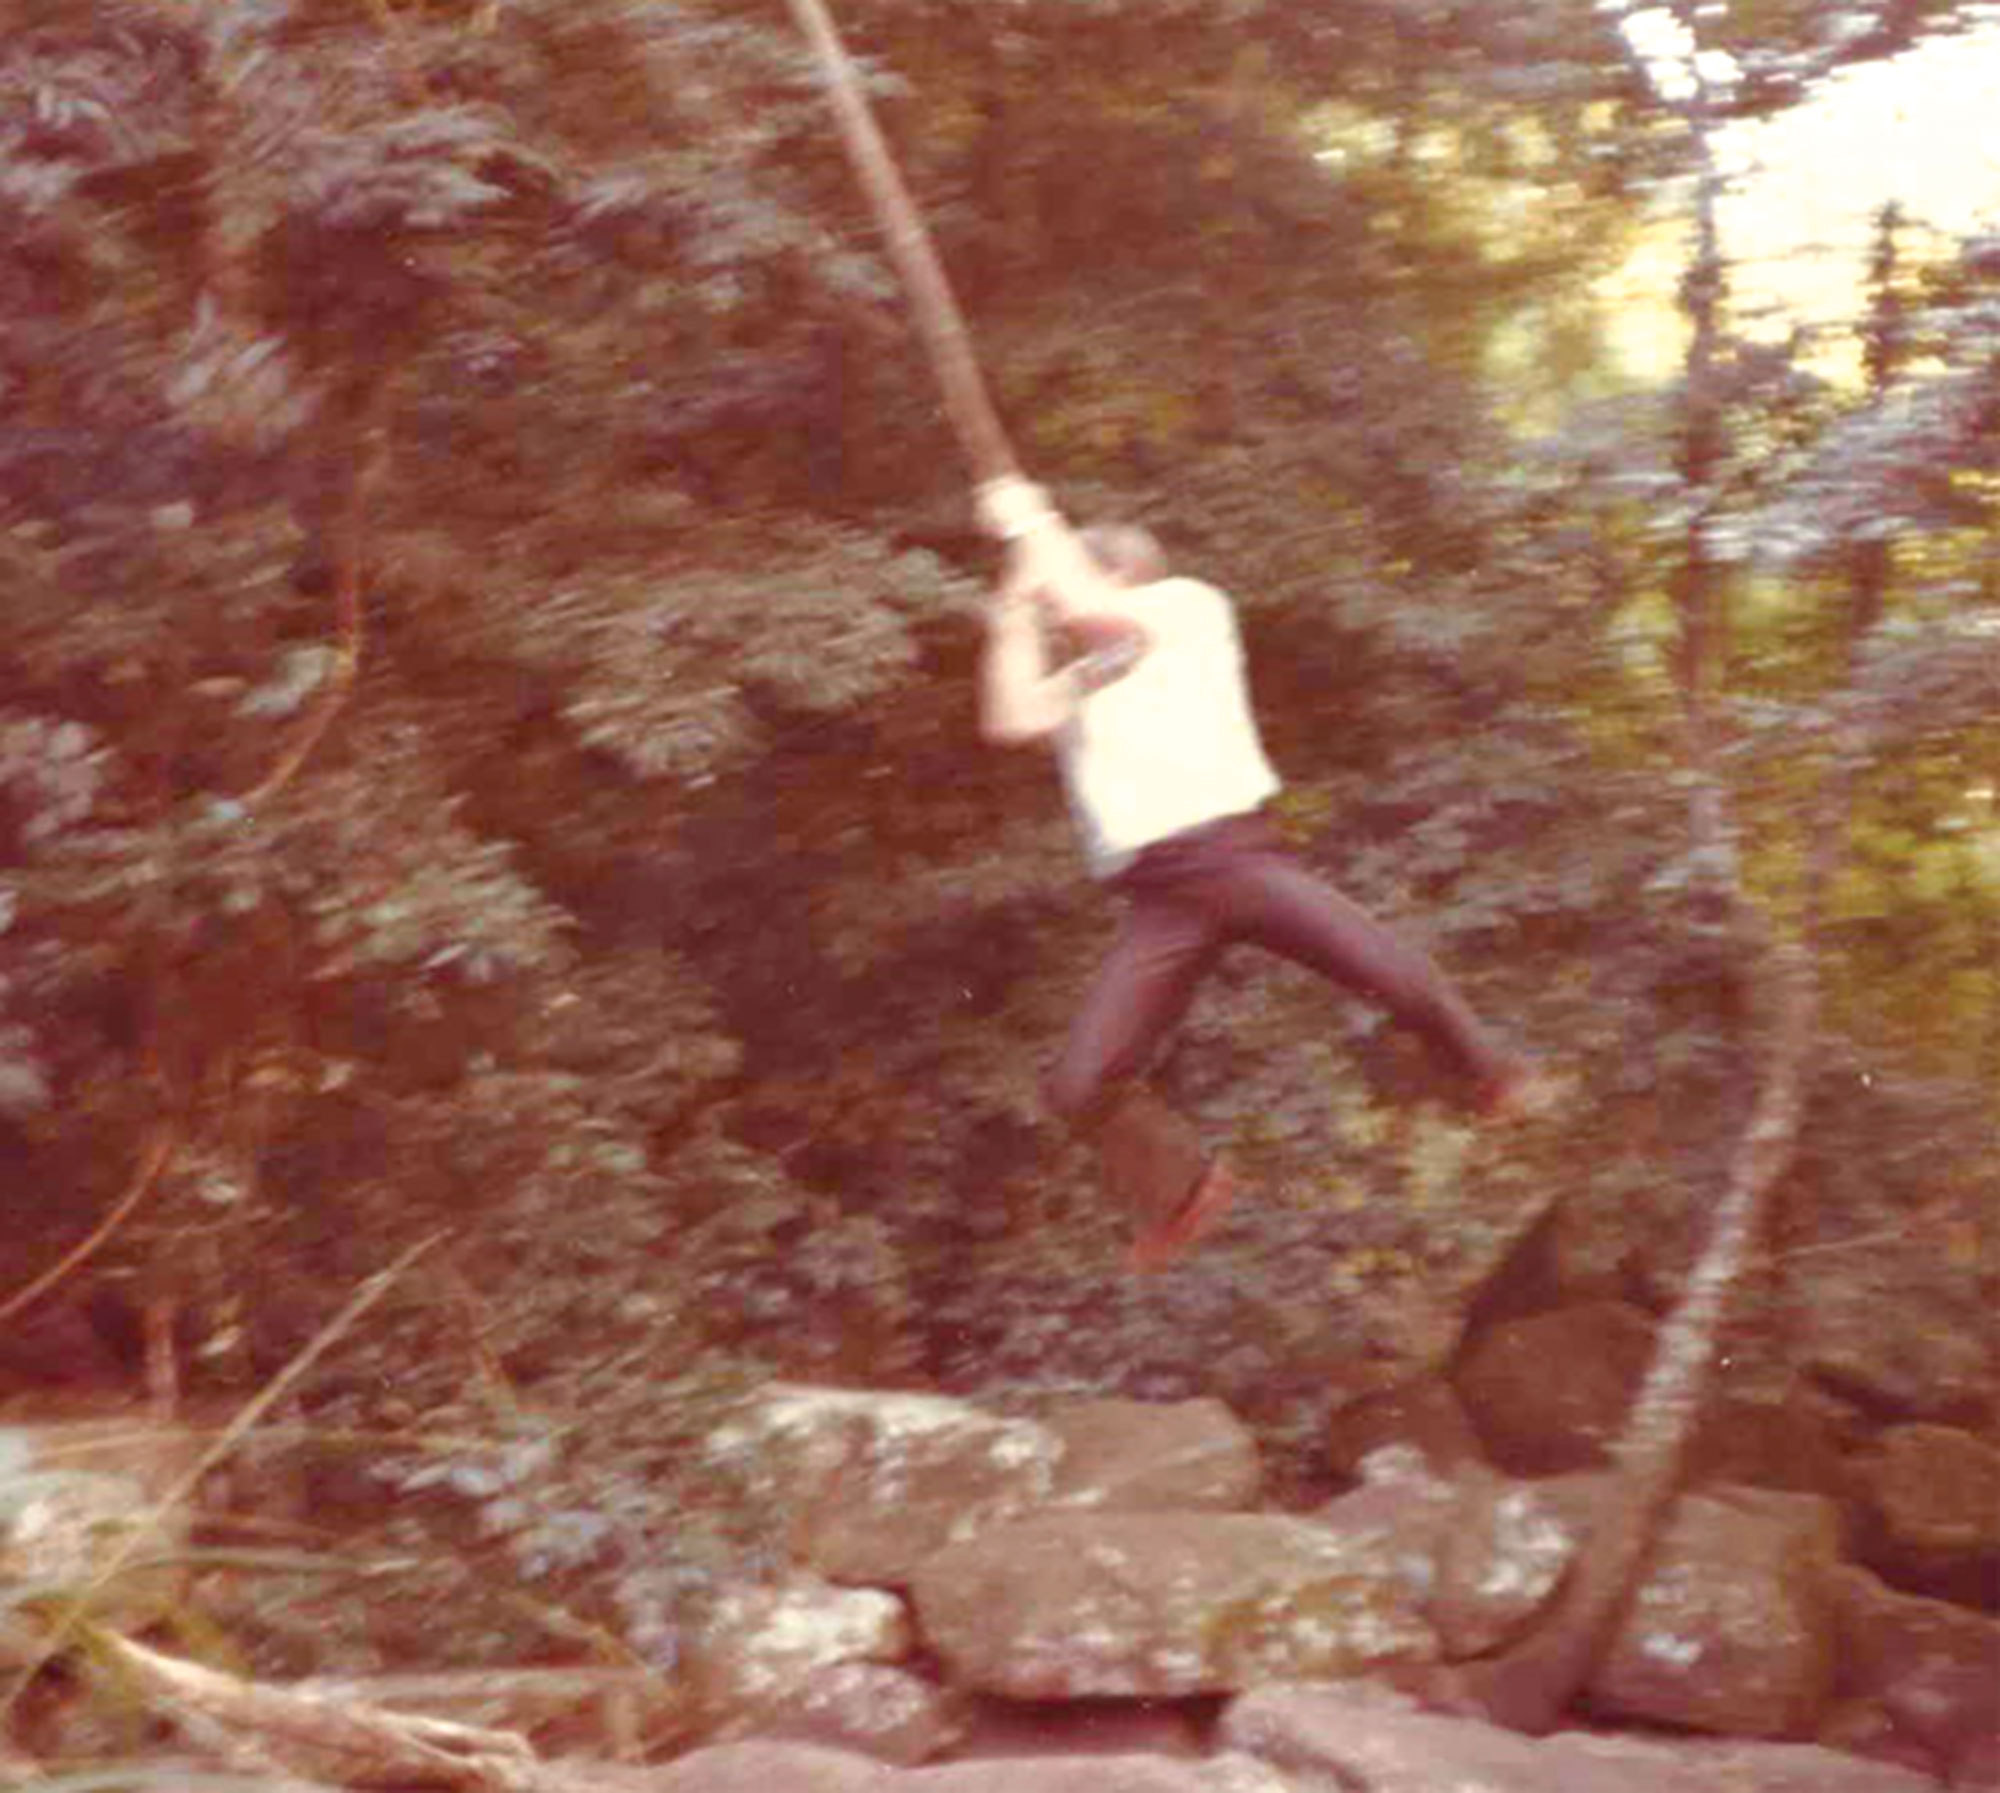 swinging from a vine on his LDS mission in Africa, circa early 1980s; Photo courtesy Flake family